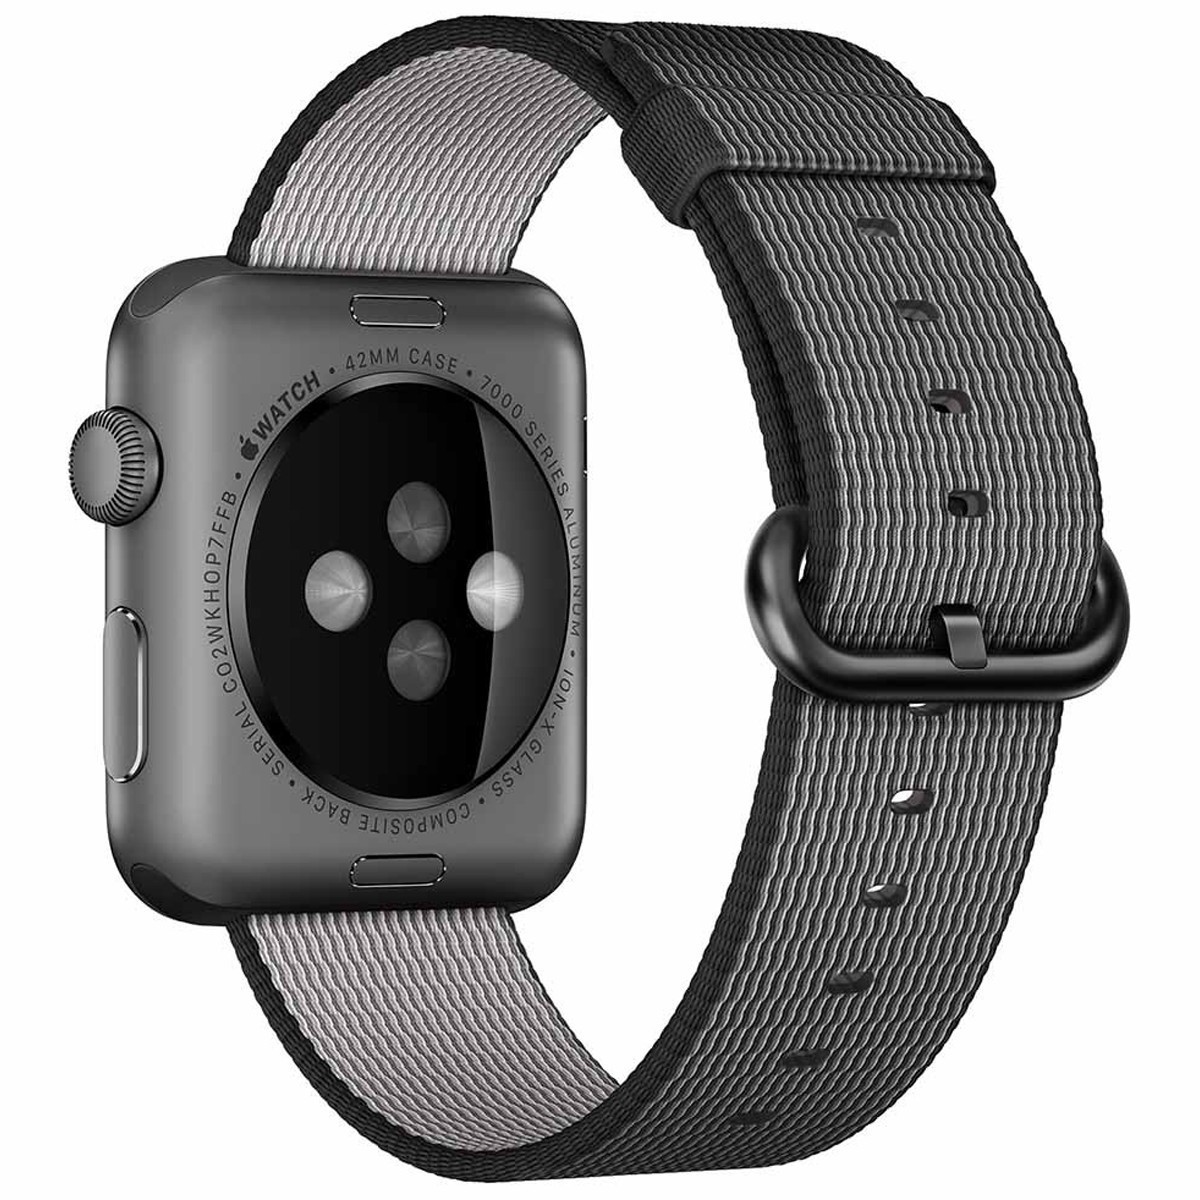 Curea pentru Apple Watch 38 mm iUni Woven Strap, Nylon, Electric Gray